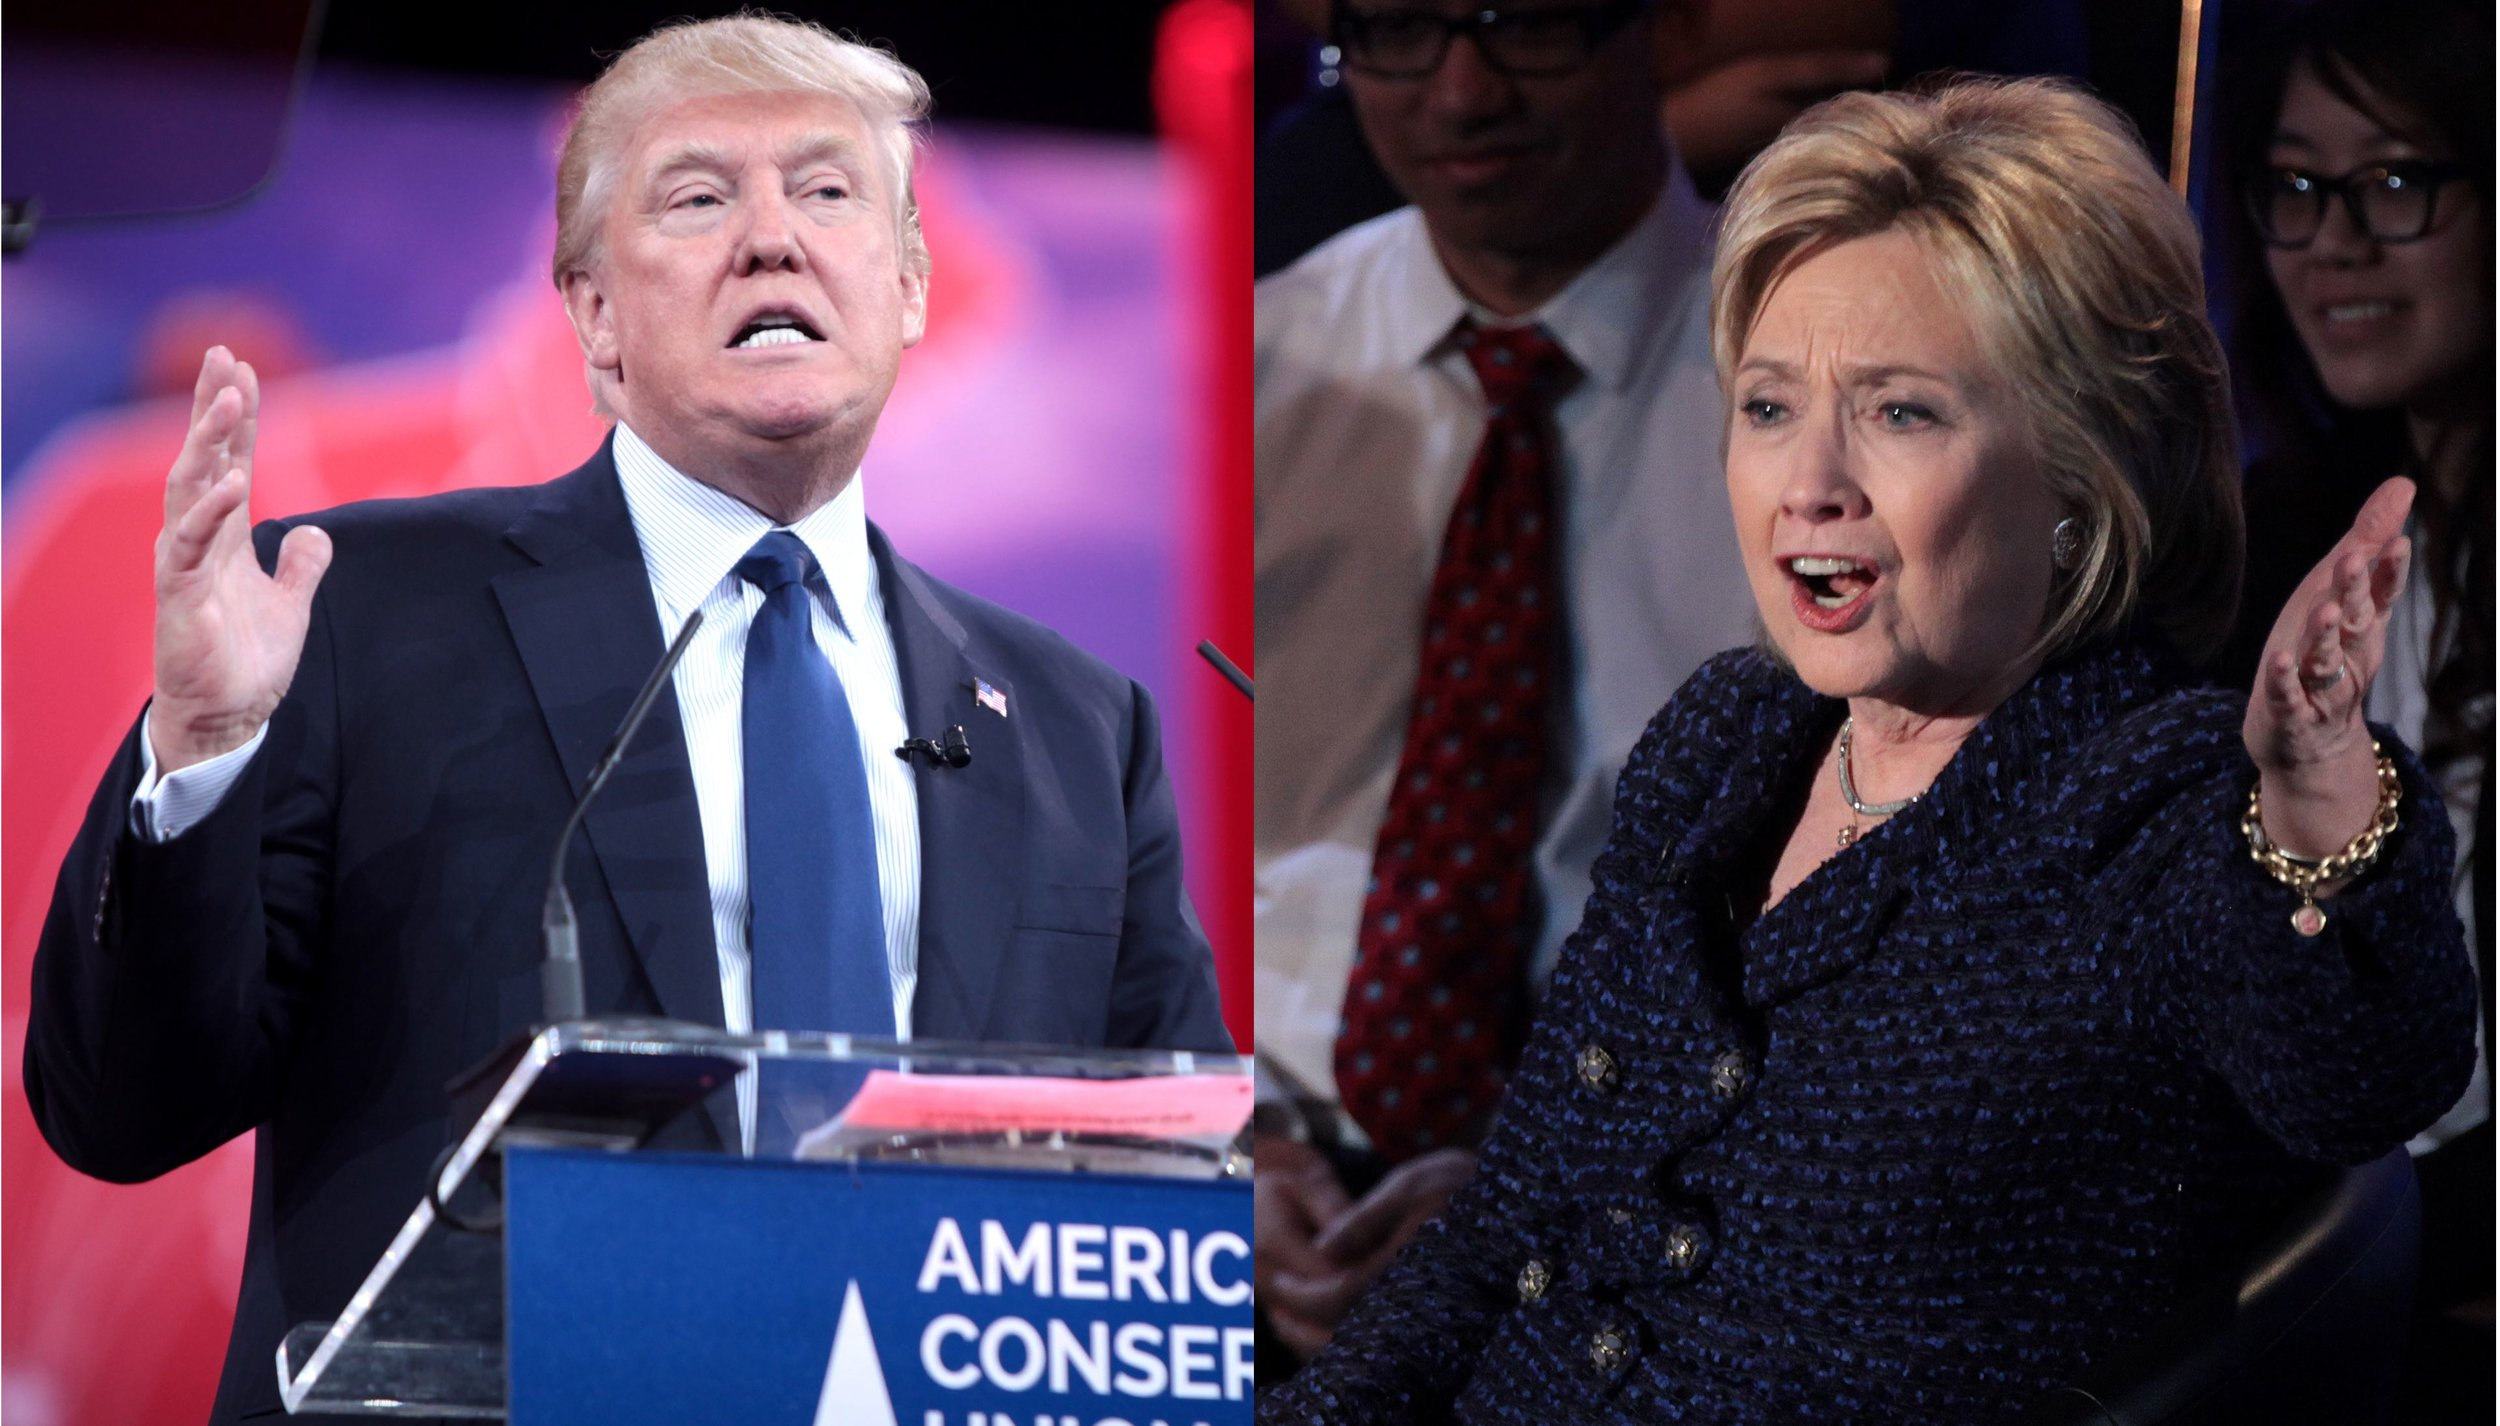 Read everything we've written on the 2016 presidential election.